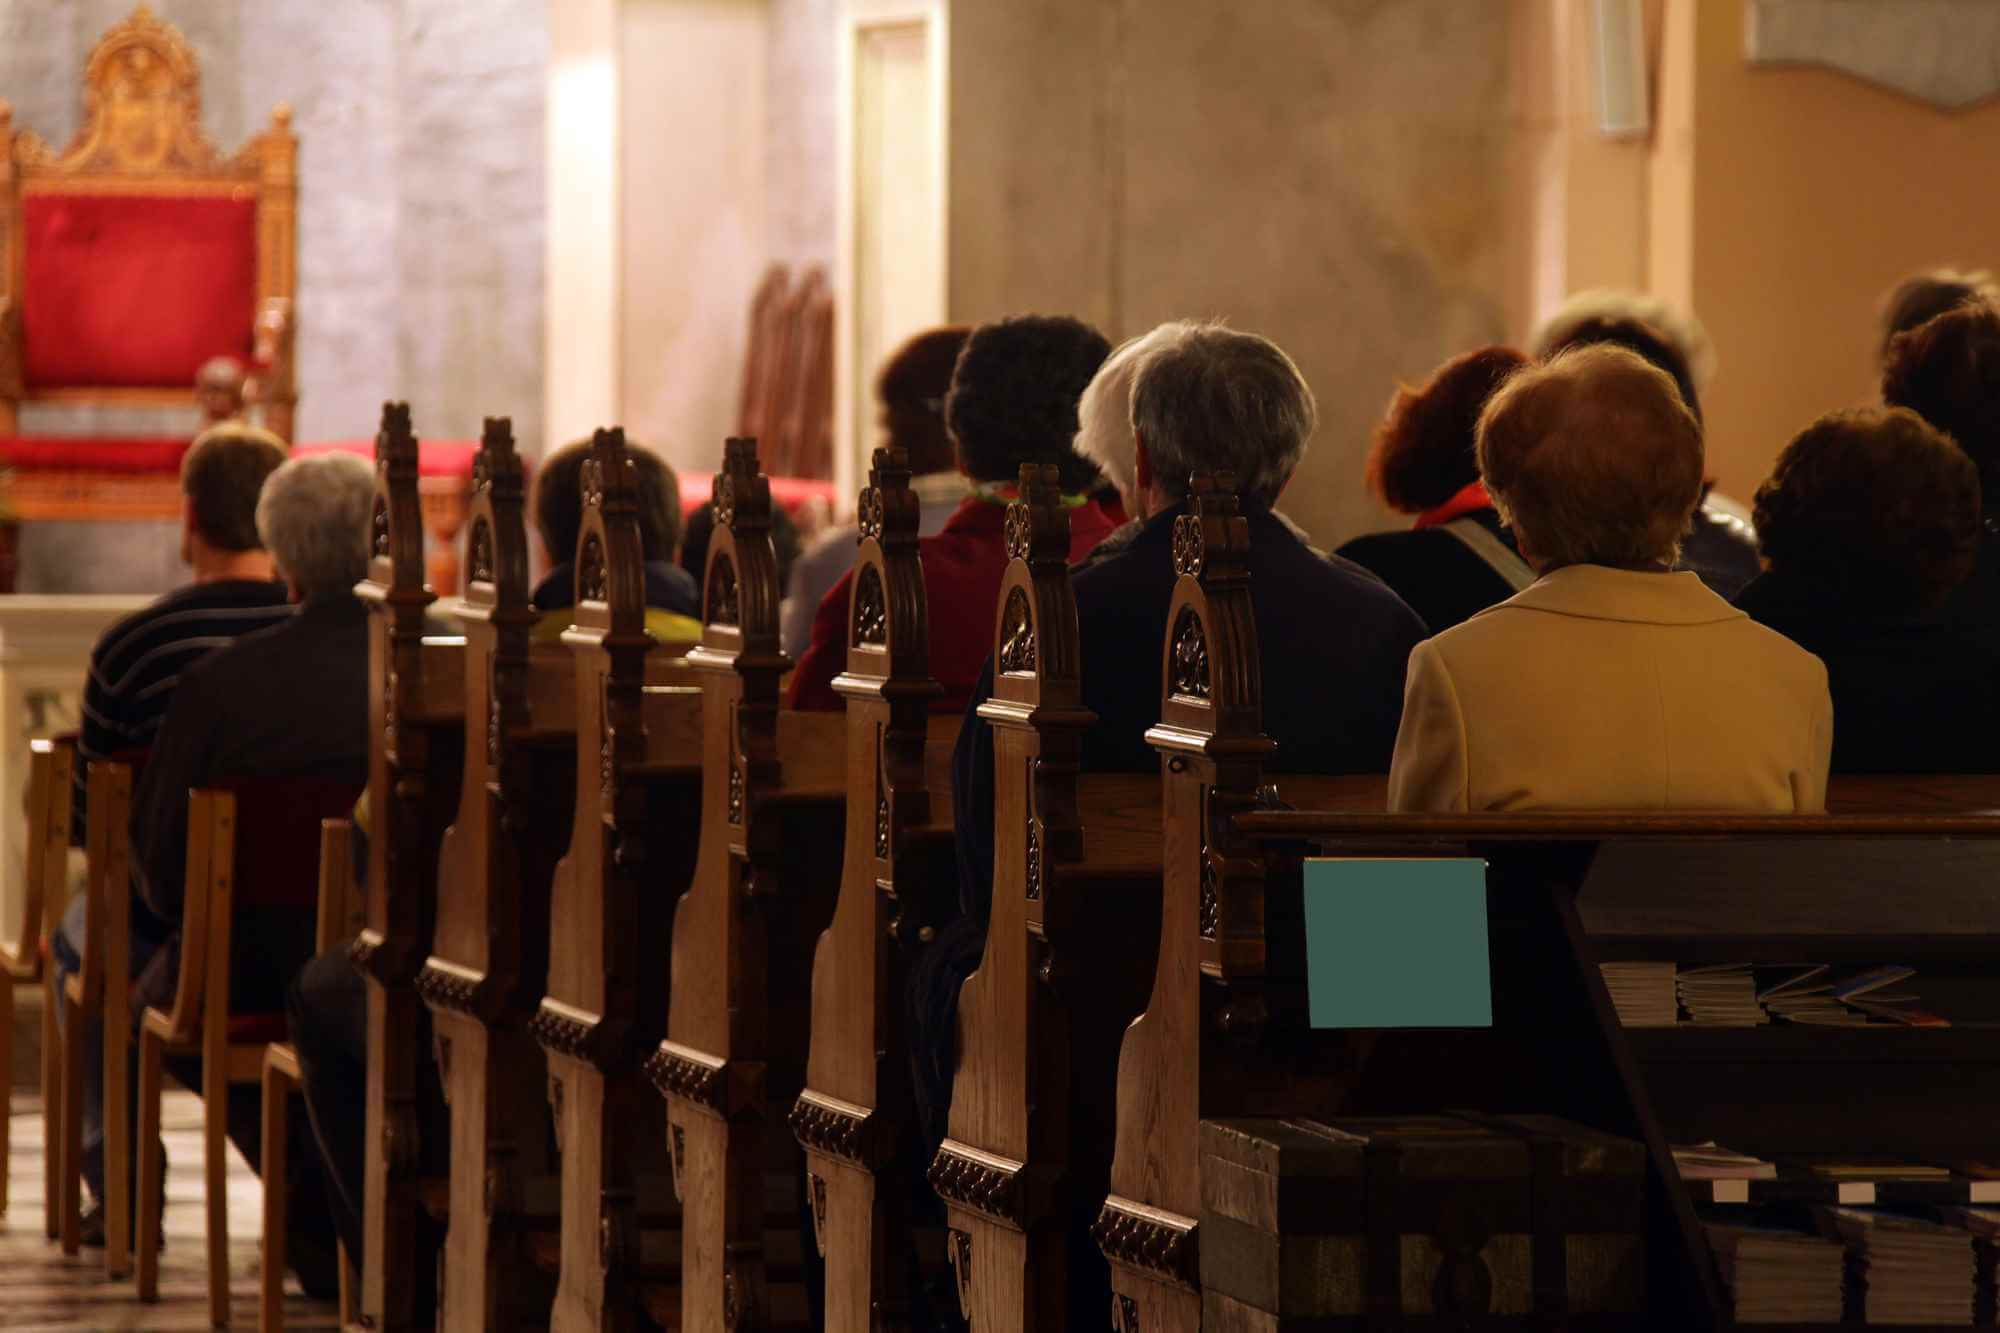 people sitting in the pews of a church while a funeral takes place